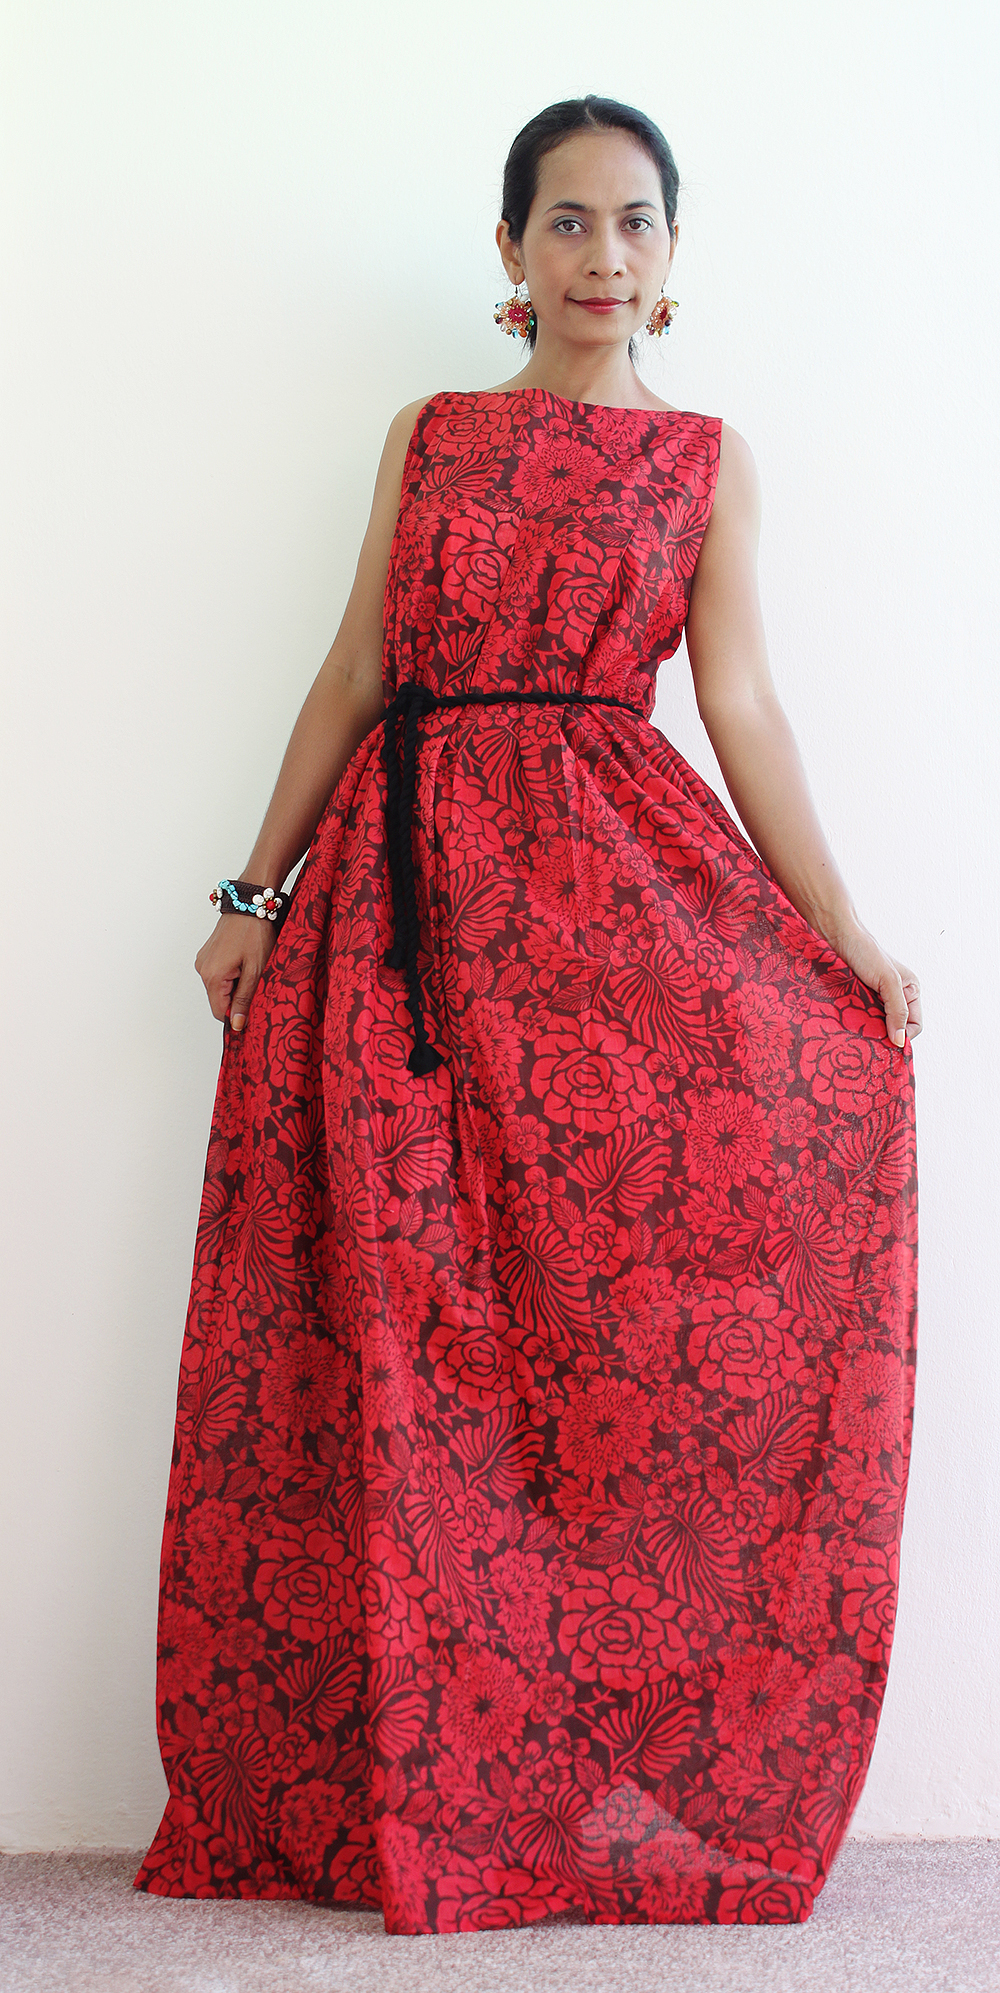 b673736c72 Red Floral Maxi Dress - Sleeveless Summer Dress : Happy Holiday Collection